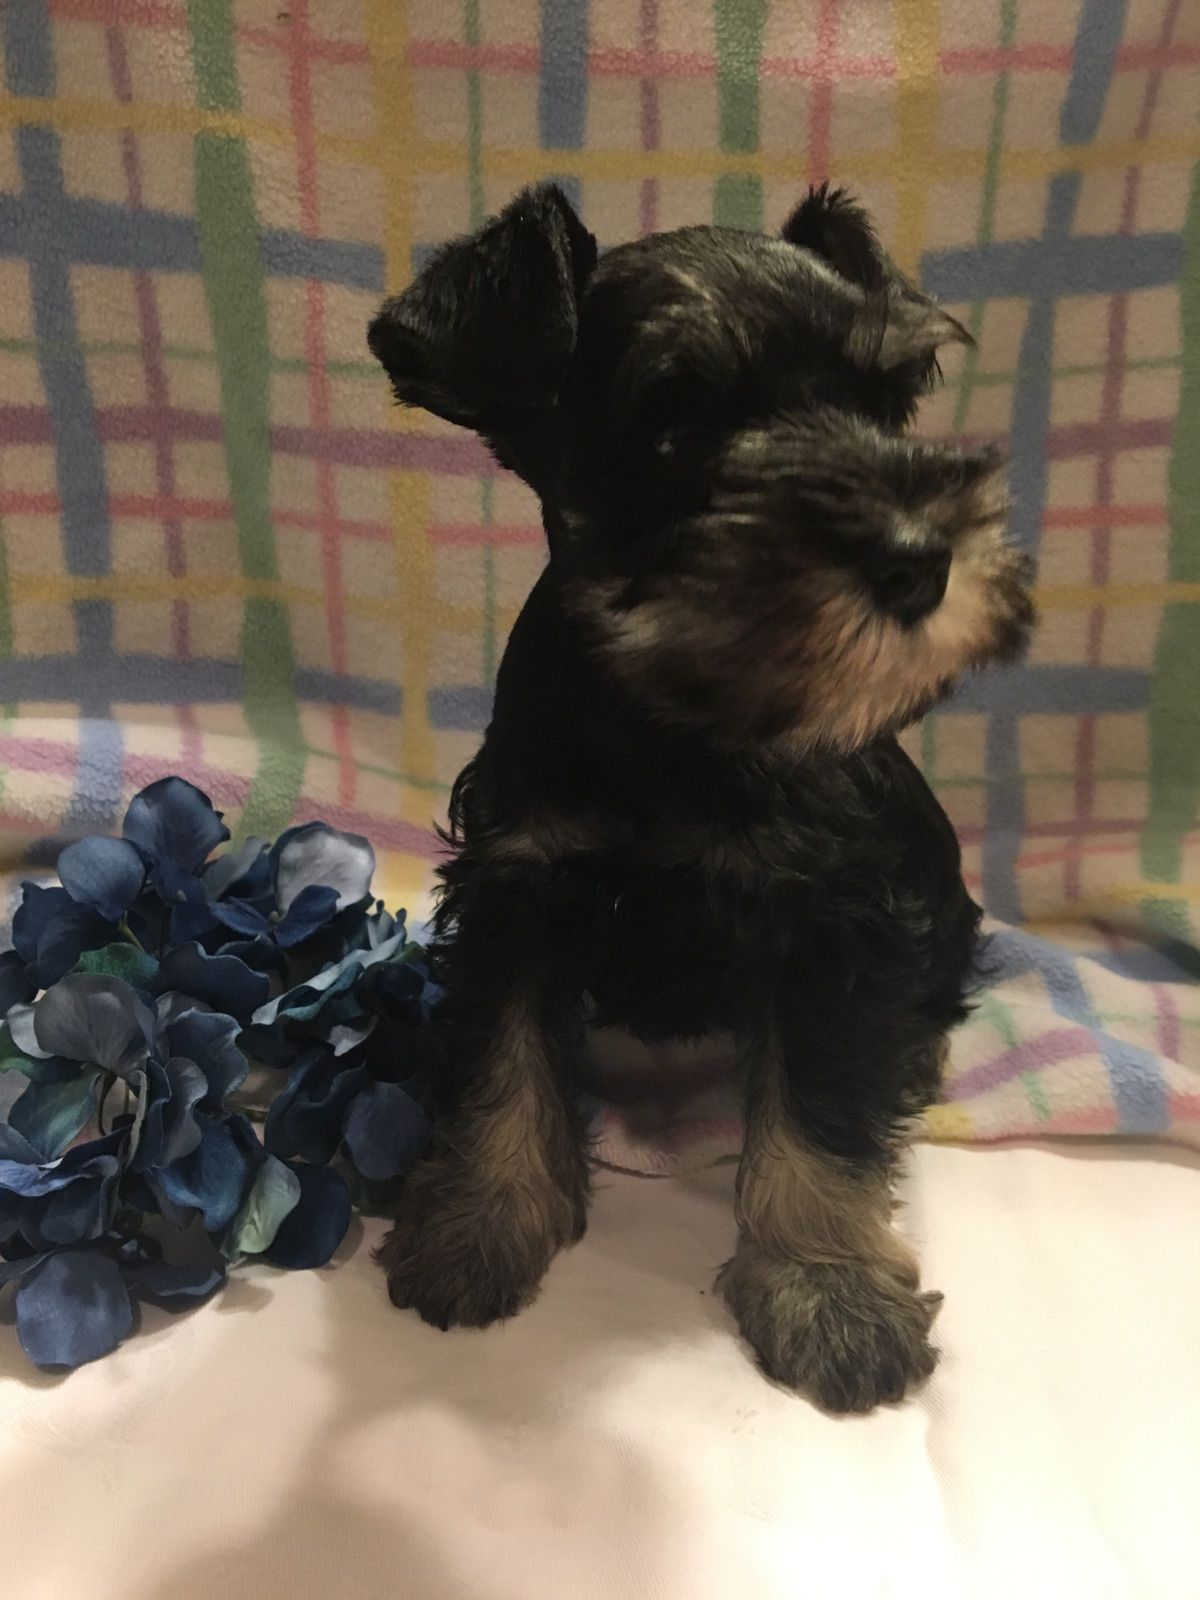 Miniature Schnauzer Breeders Schnauzer Puppies For Sale In Houston Texas Schnauzer Puppy Puppies Miniature Schnauzer Puppies